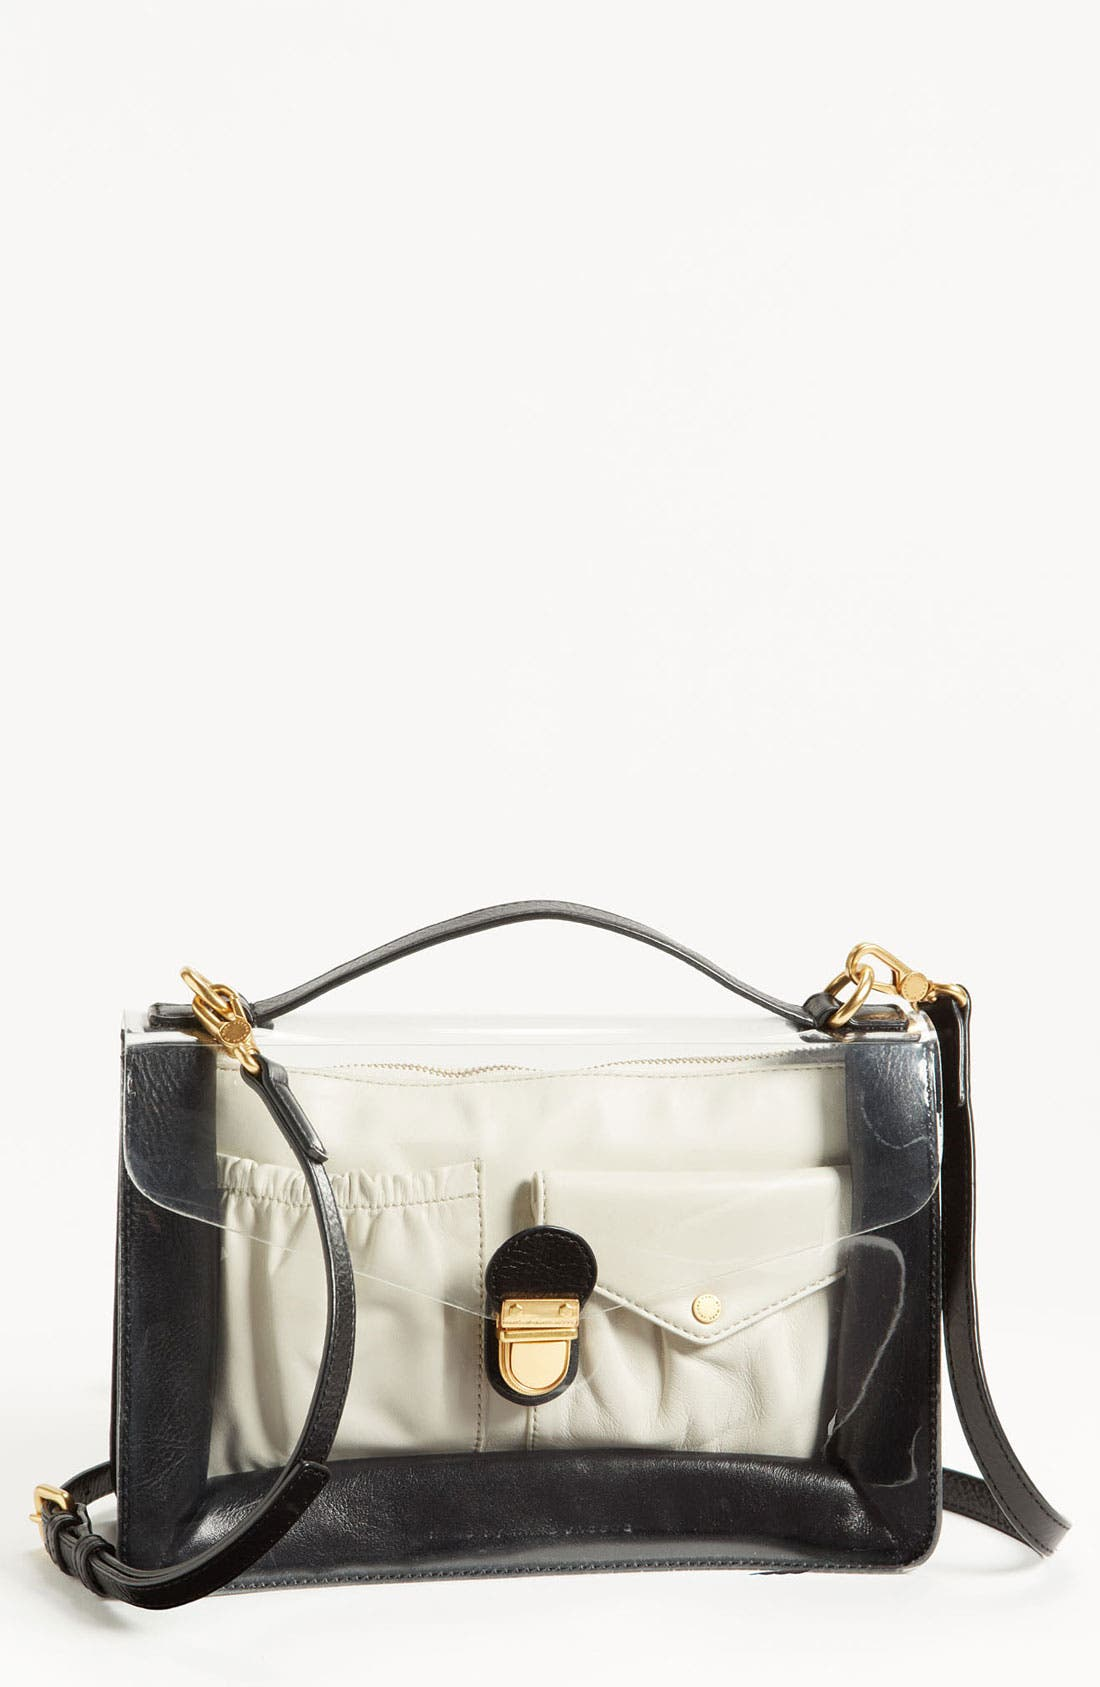 Main Image - MARC BY MARC JACOBS 'Clearly' Top Handle Satchel